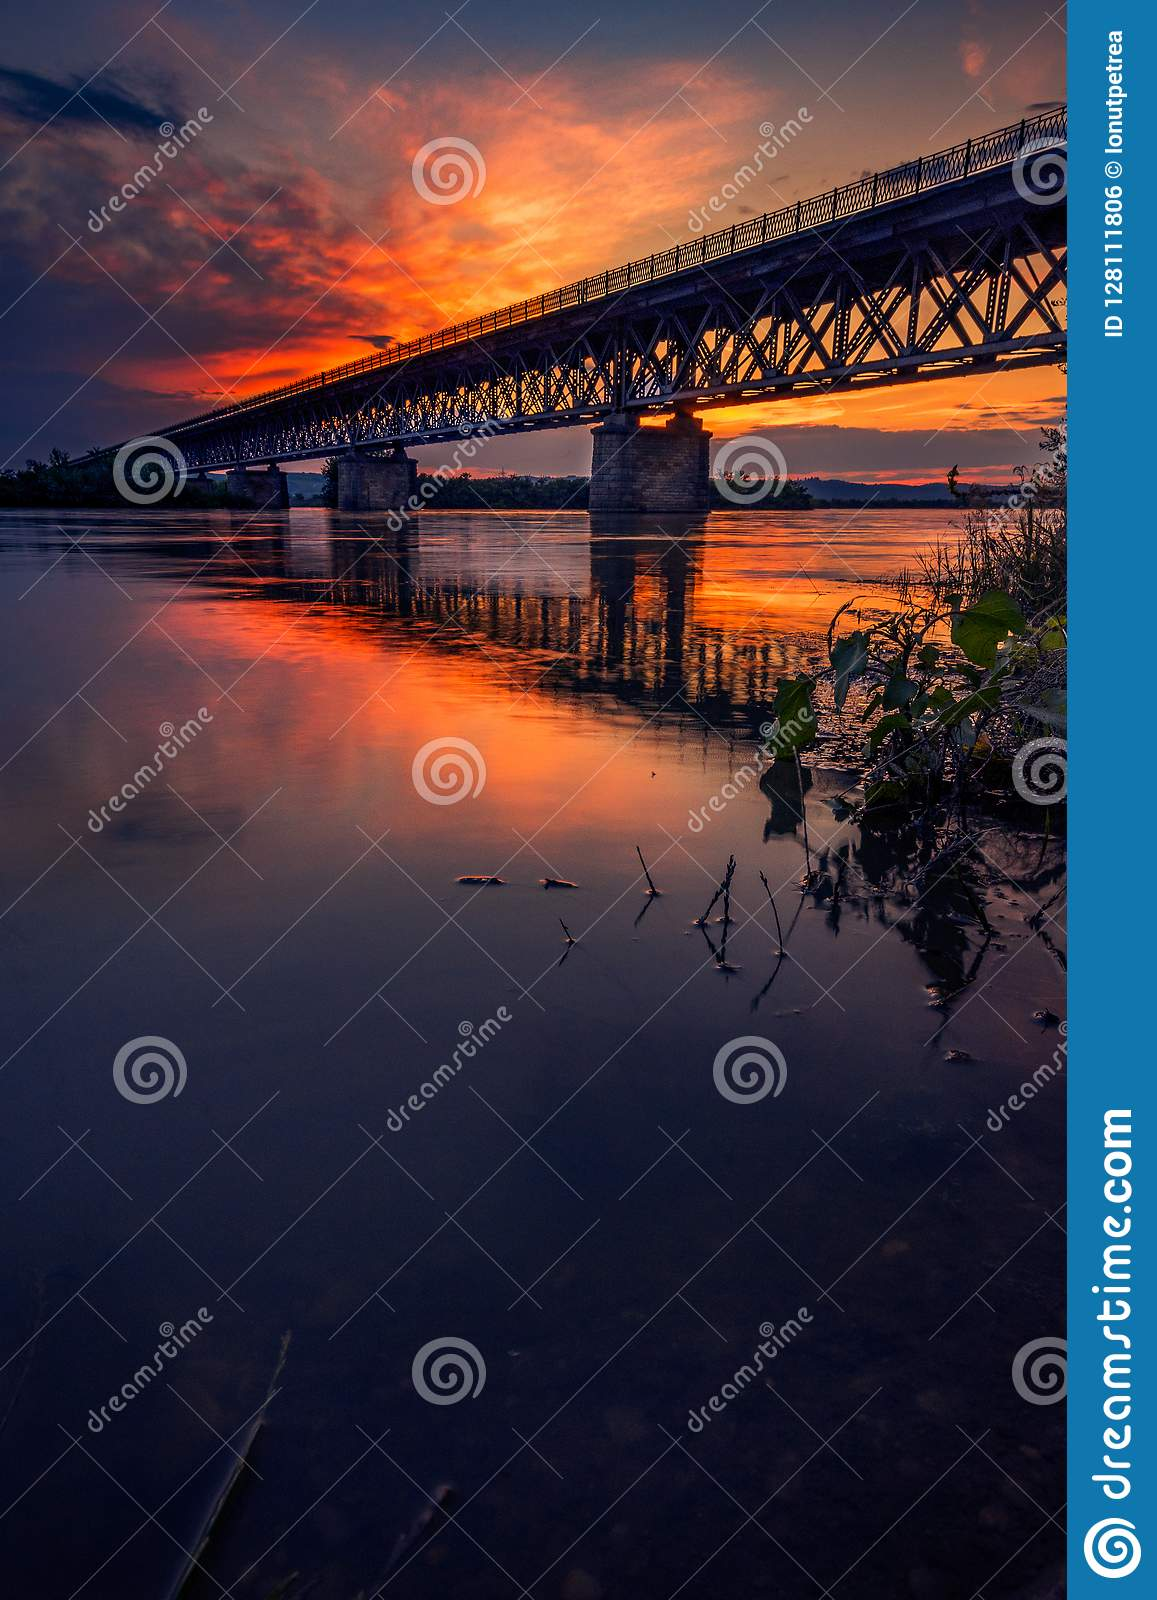 Road bridge crossing a river at sunset with beautiful clouds on